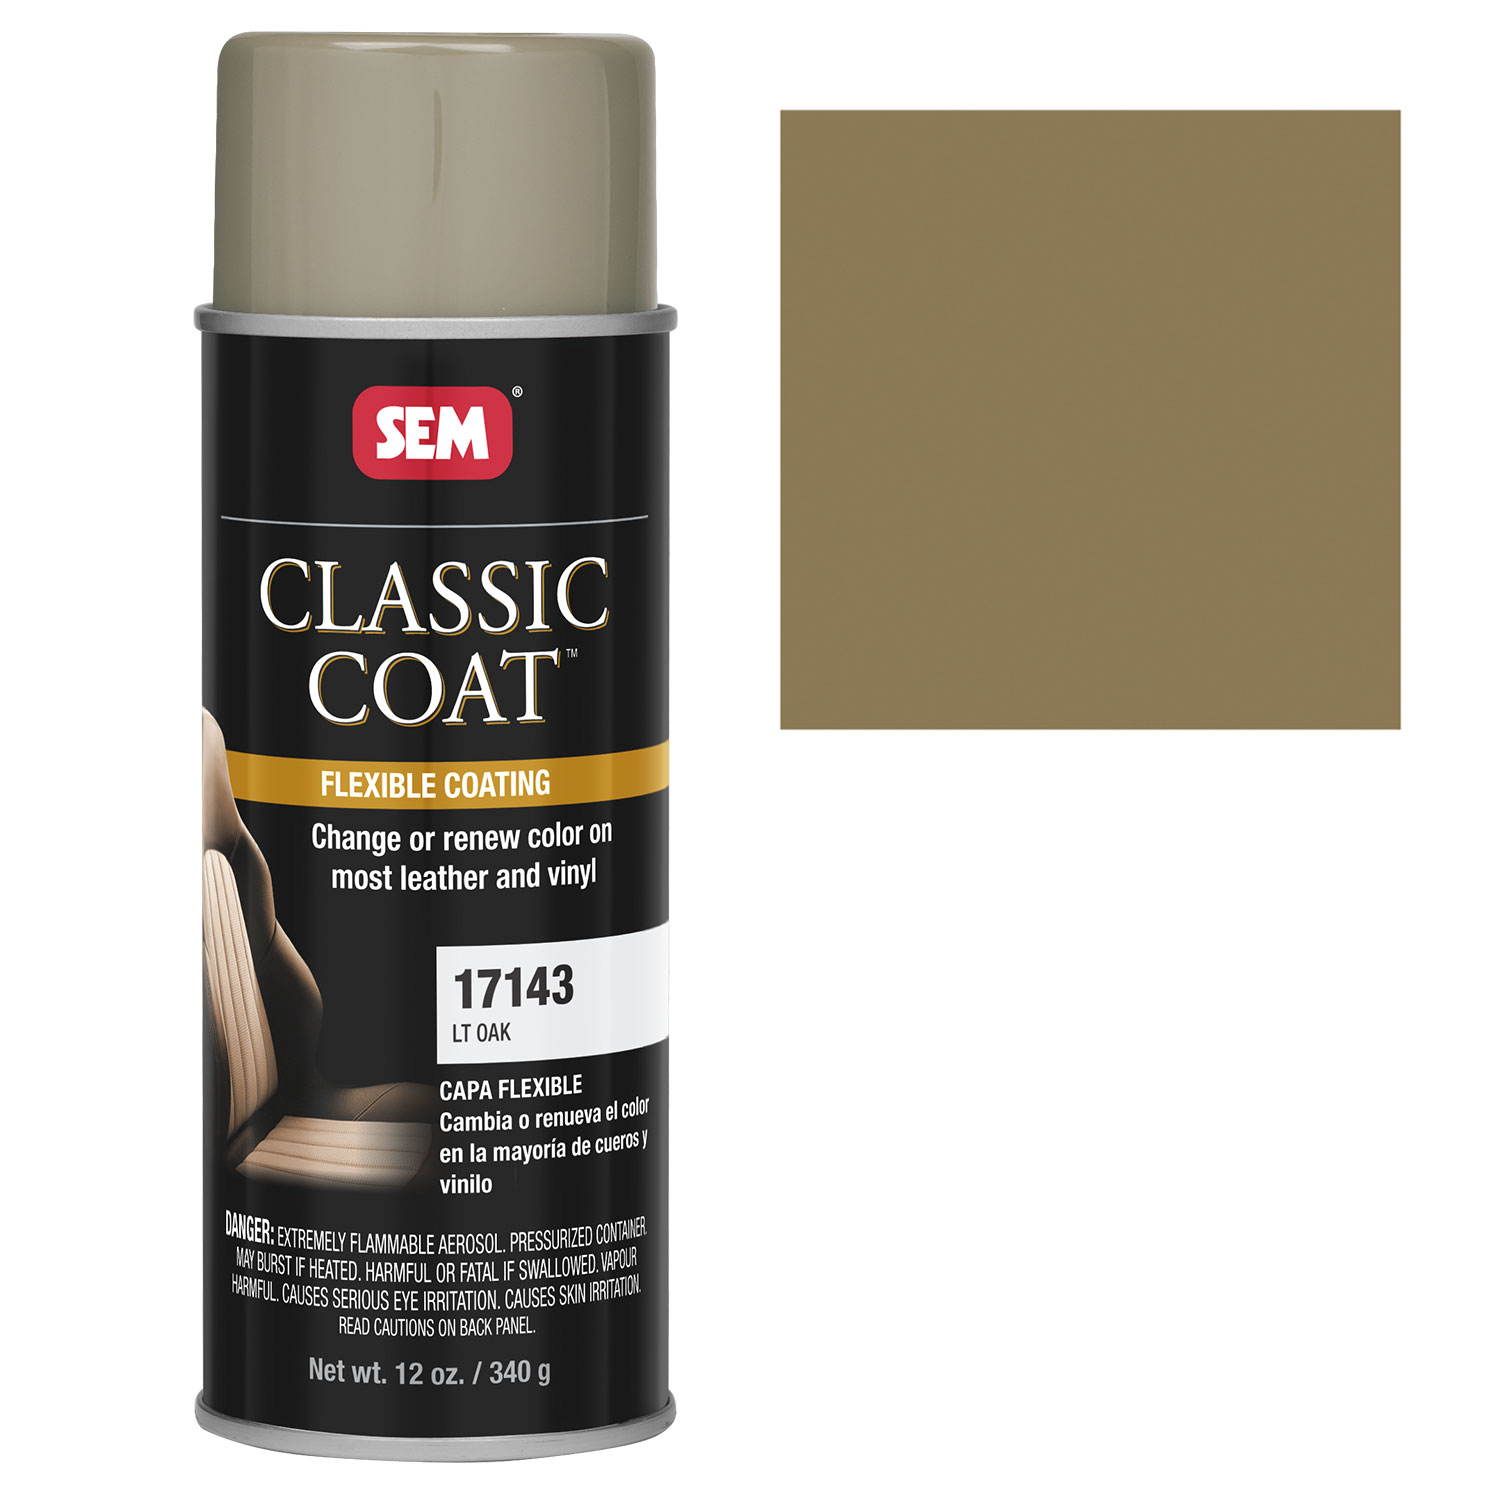 details about sem classic coat lt oak vinyl leather spray auto paint. Black Bedroom Furniture Sets. Home Design Ideas